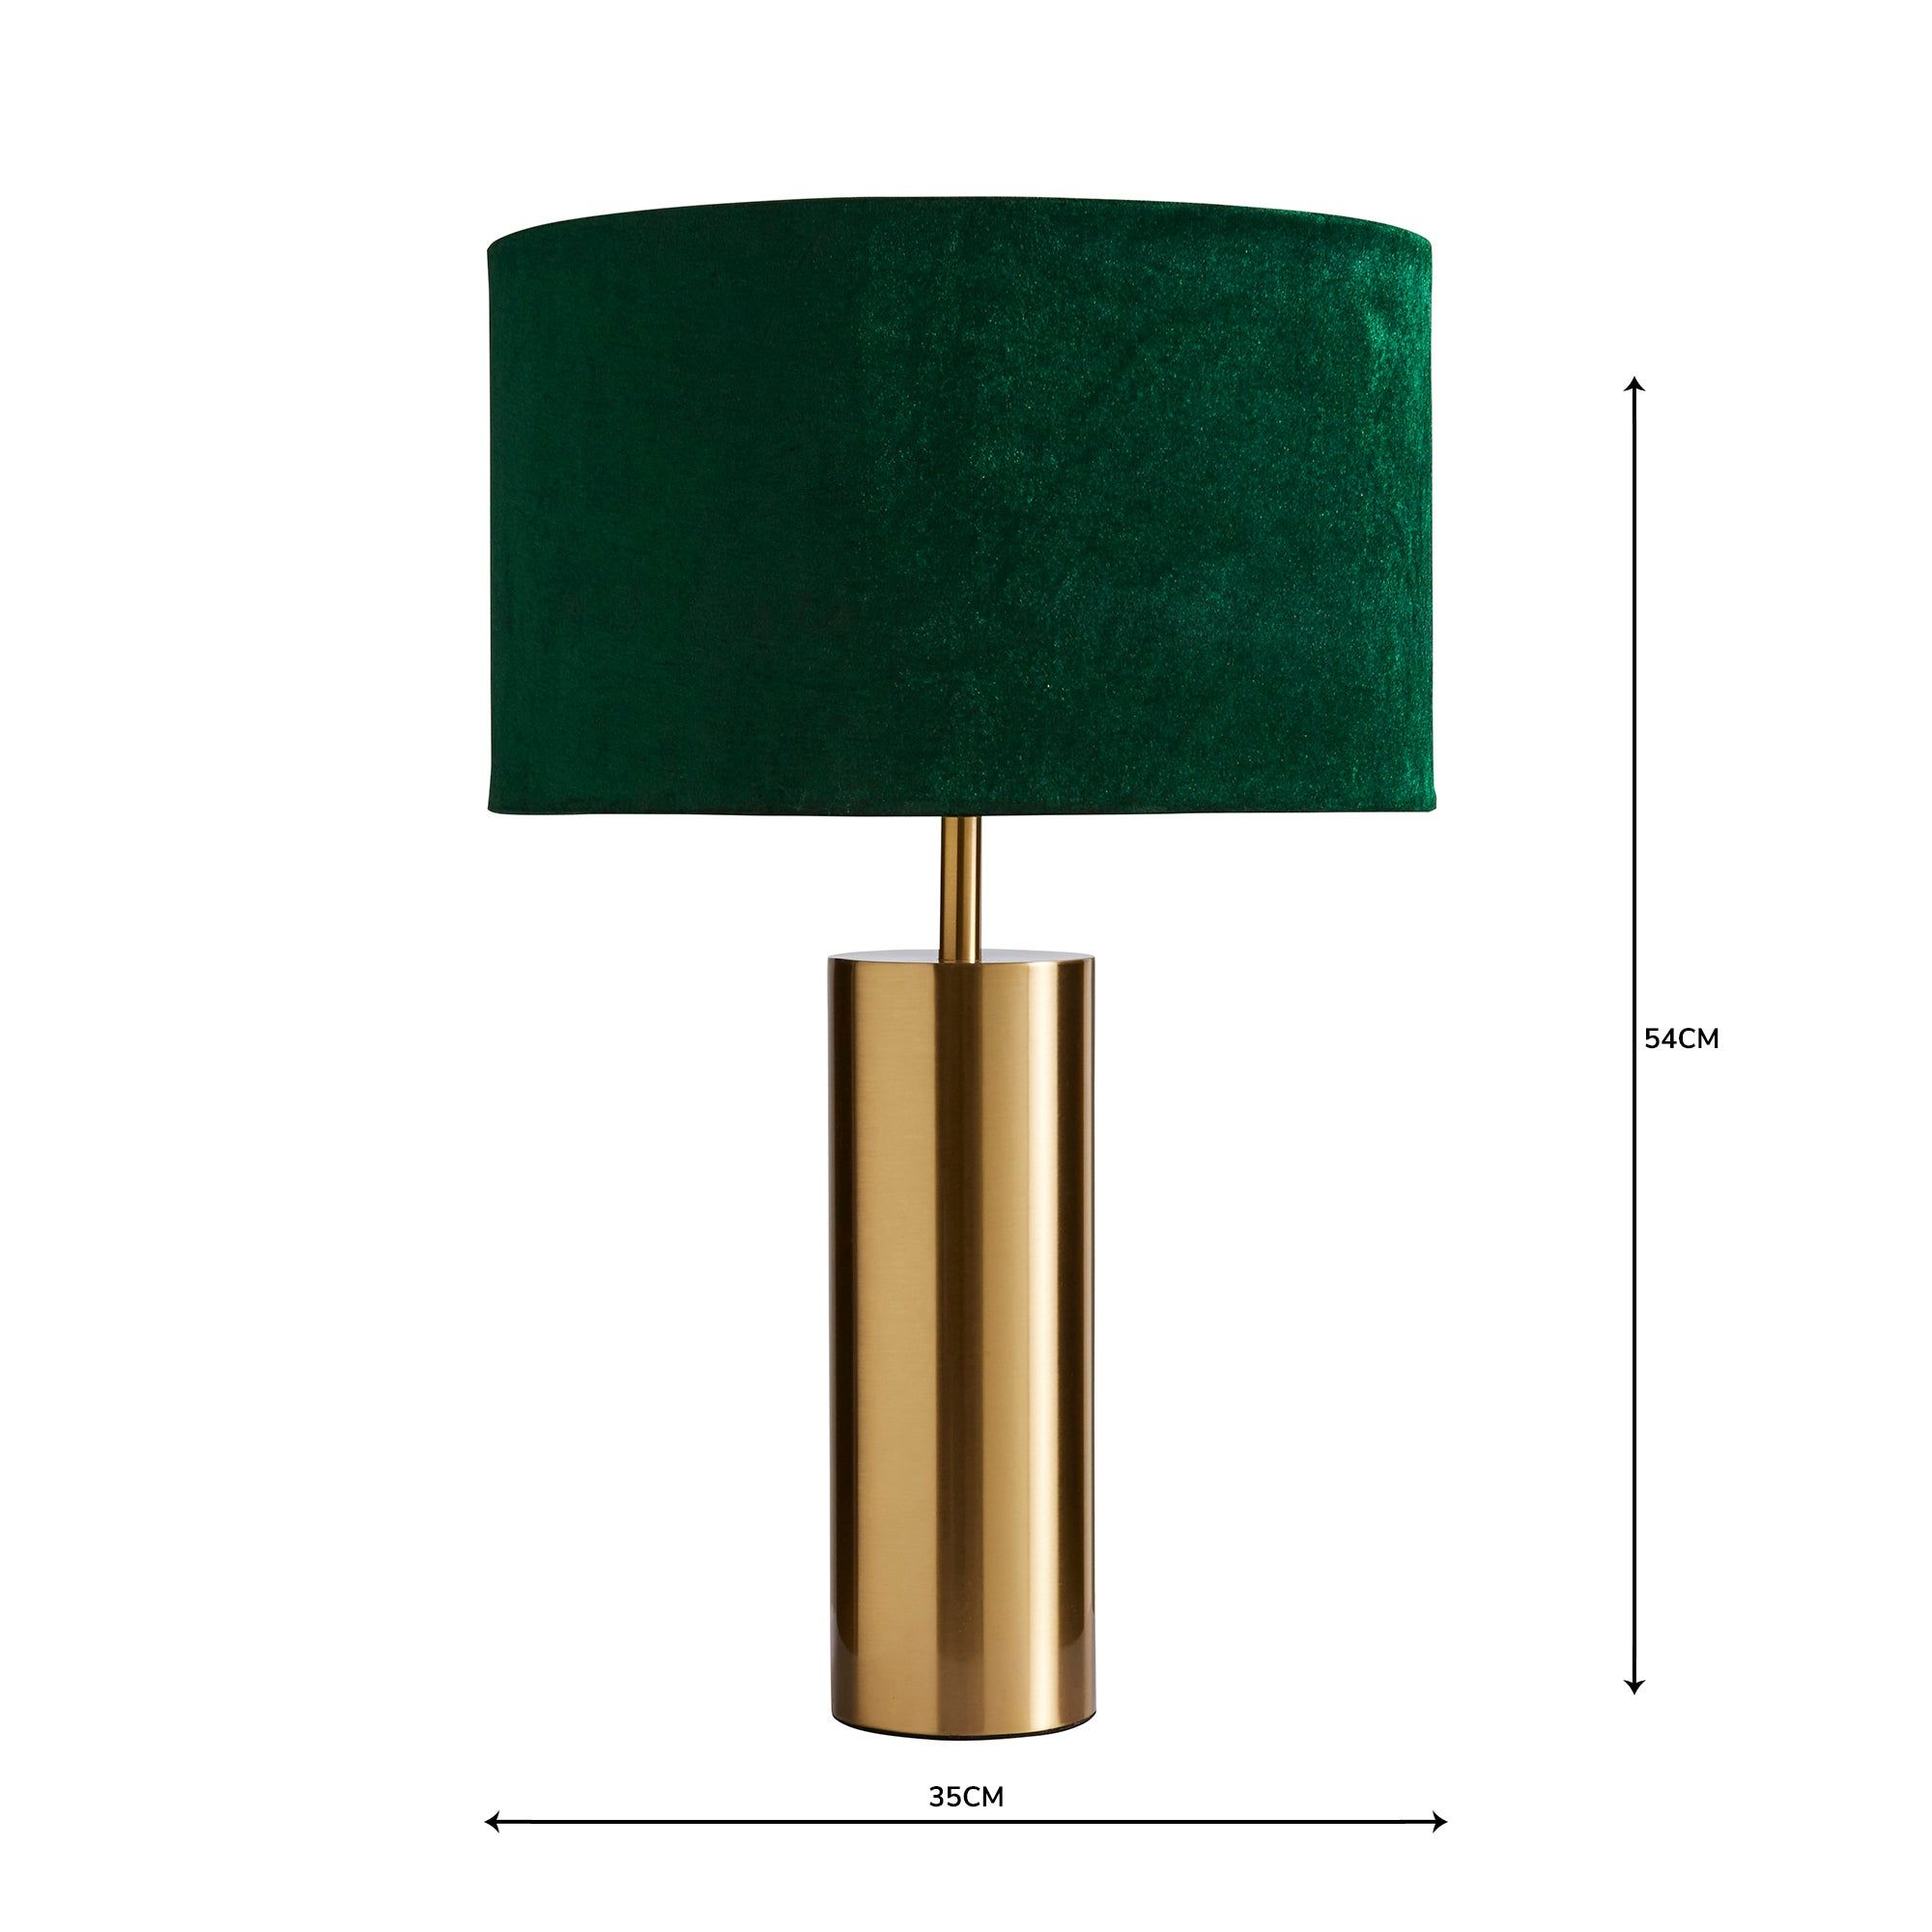 Nesa Velvet Touch Table Lamp Brushed Gold And Bottle Green In 2020 Touch Table Lamps Dimmable Table Lamp Table Lamp